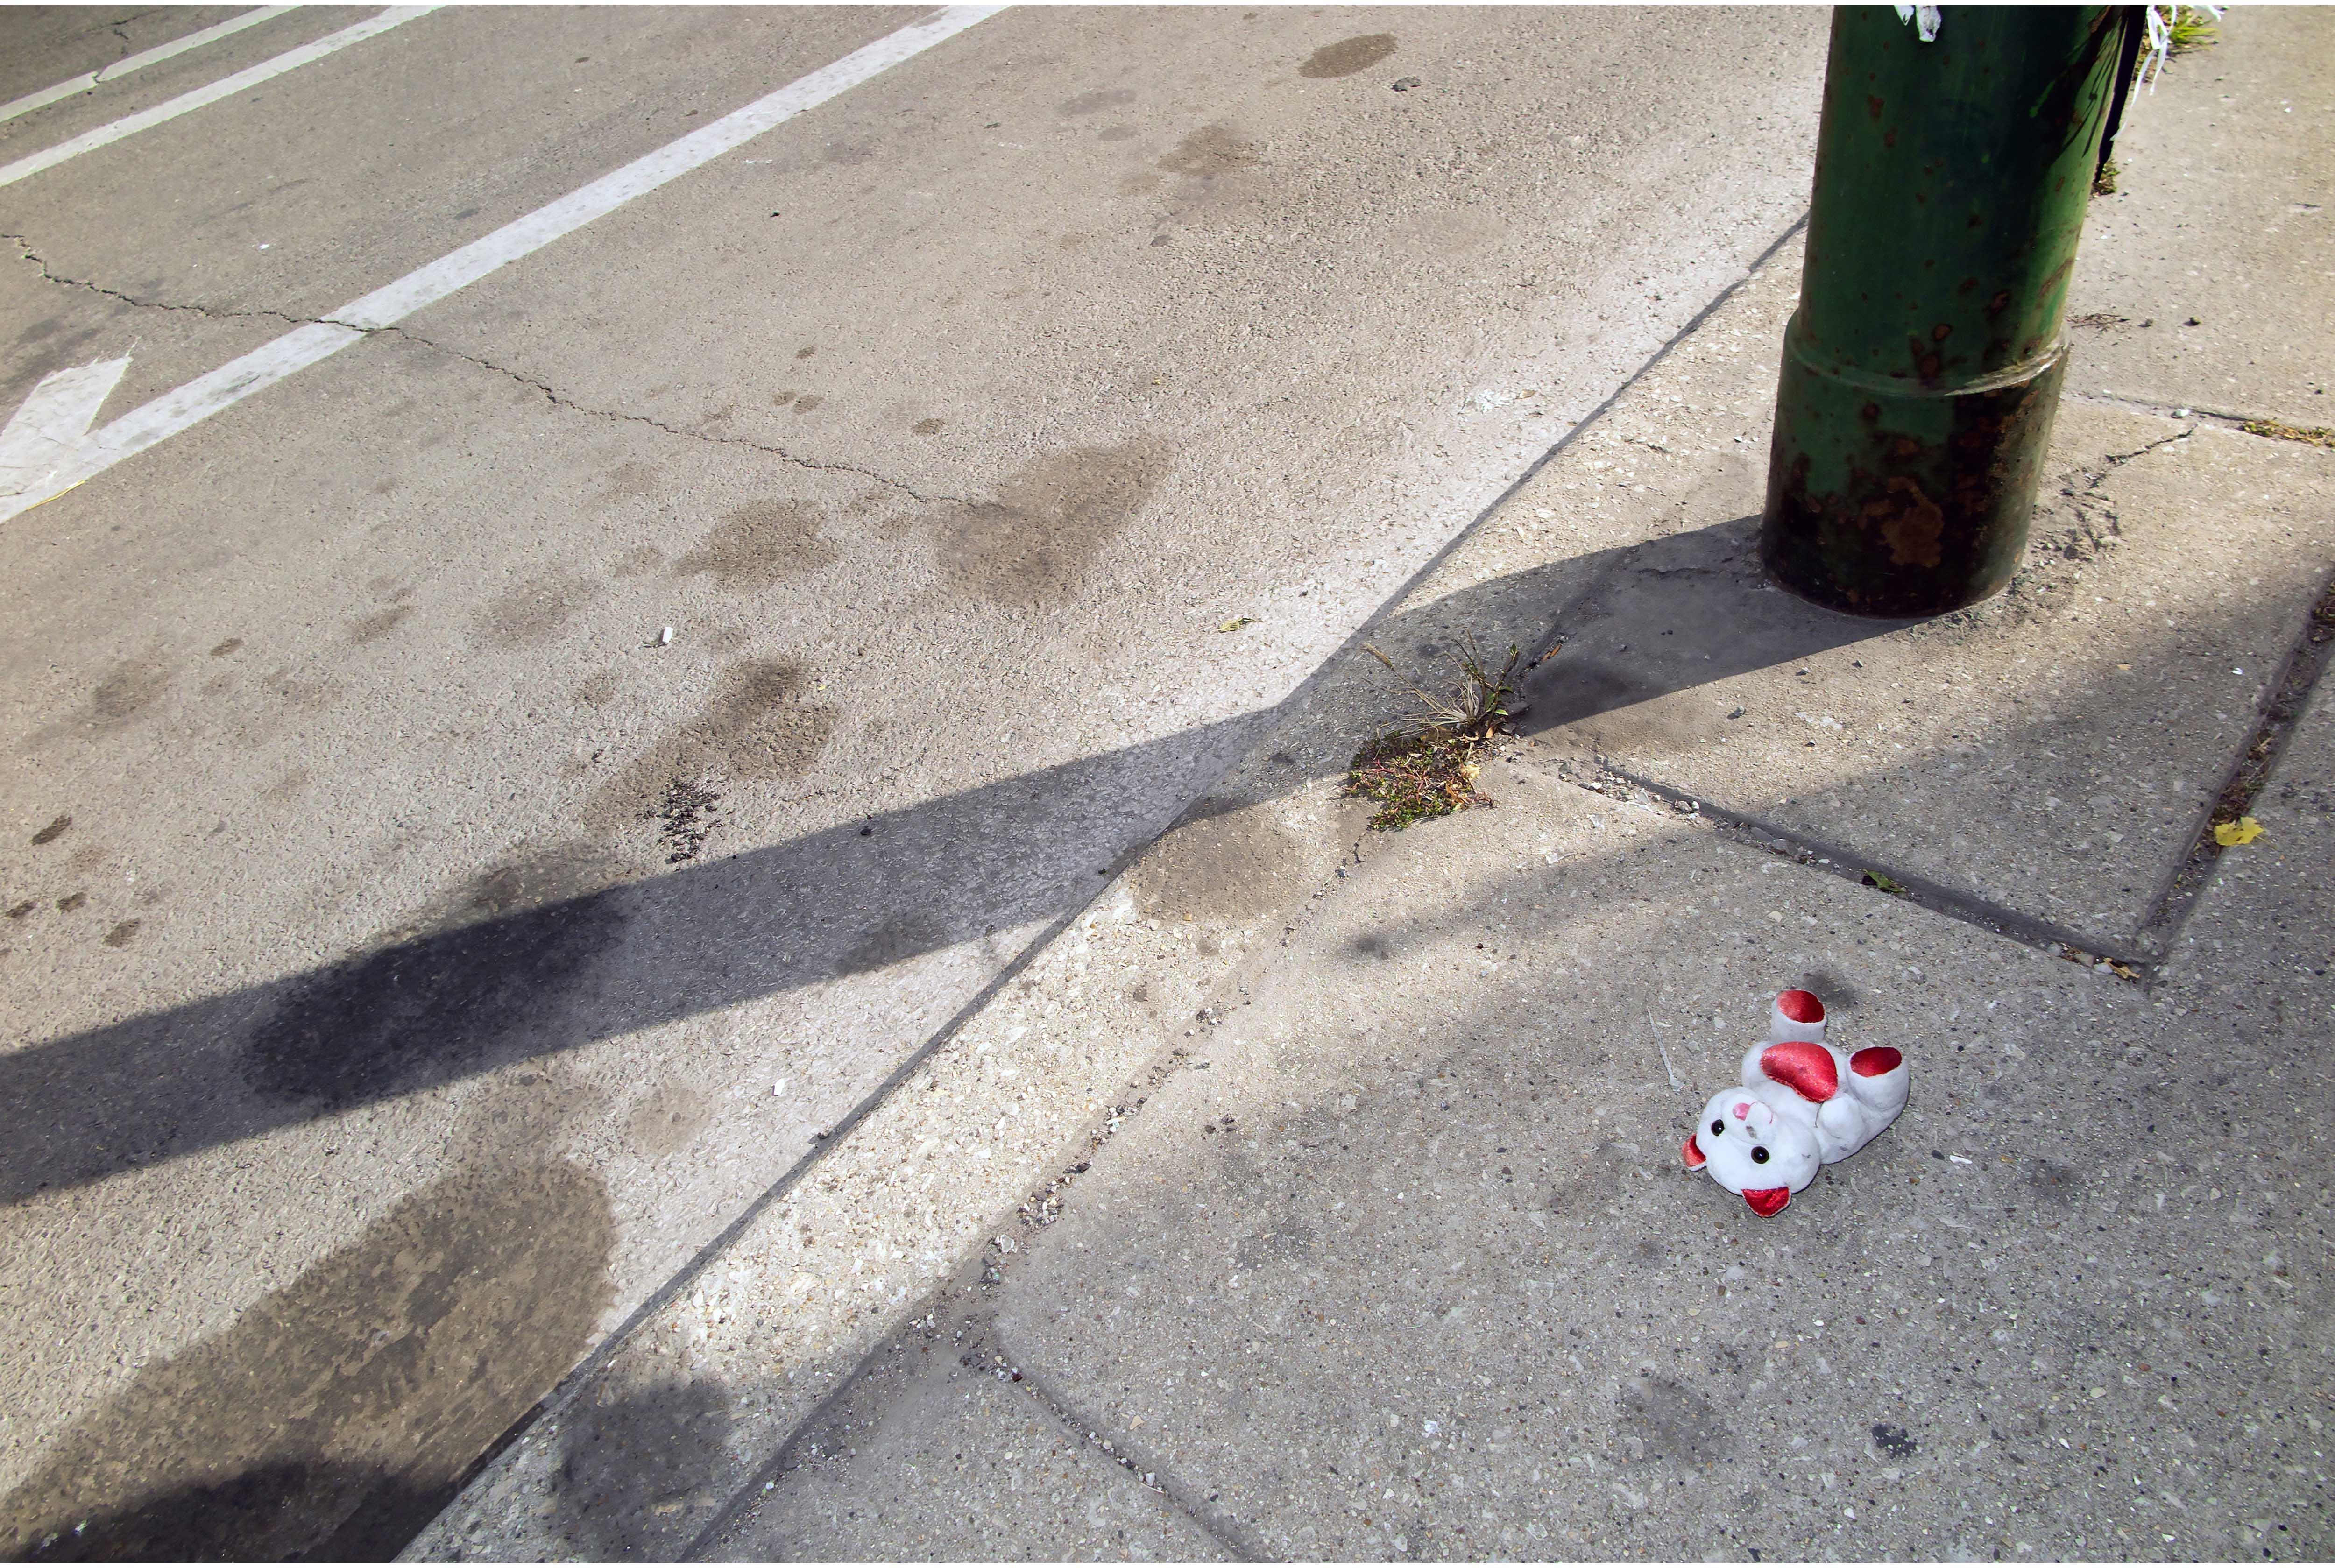 A teddy bear placed at the memorial for a man killed in West Englewood. (Courtesy of Thomas Ferrella)